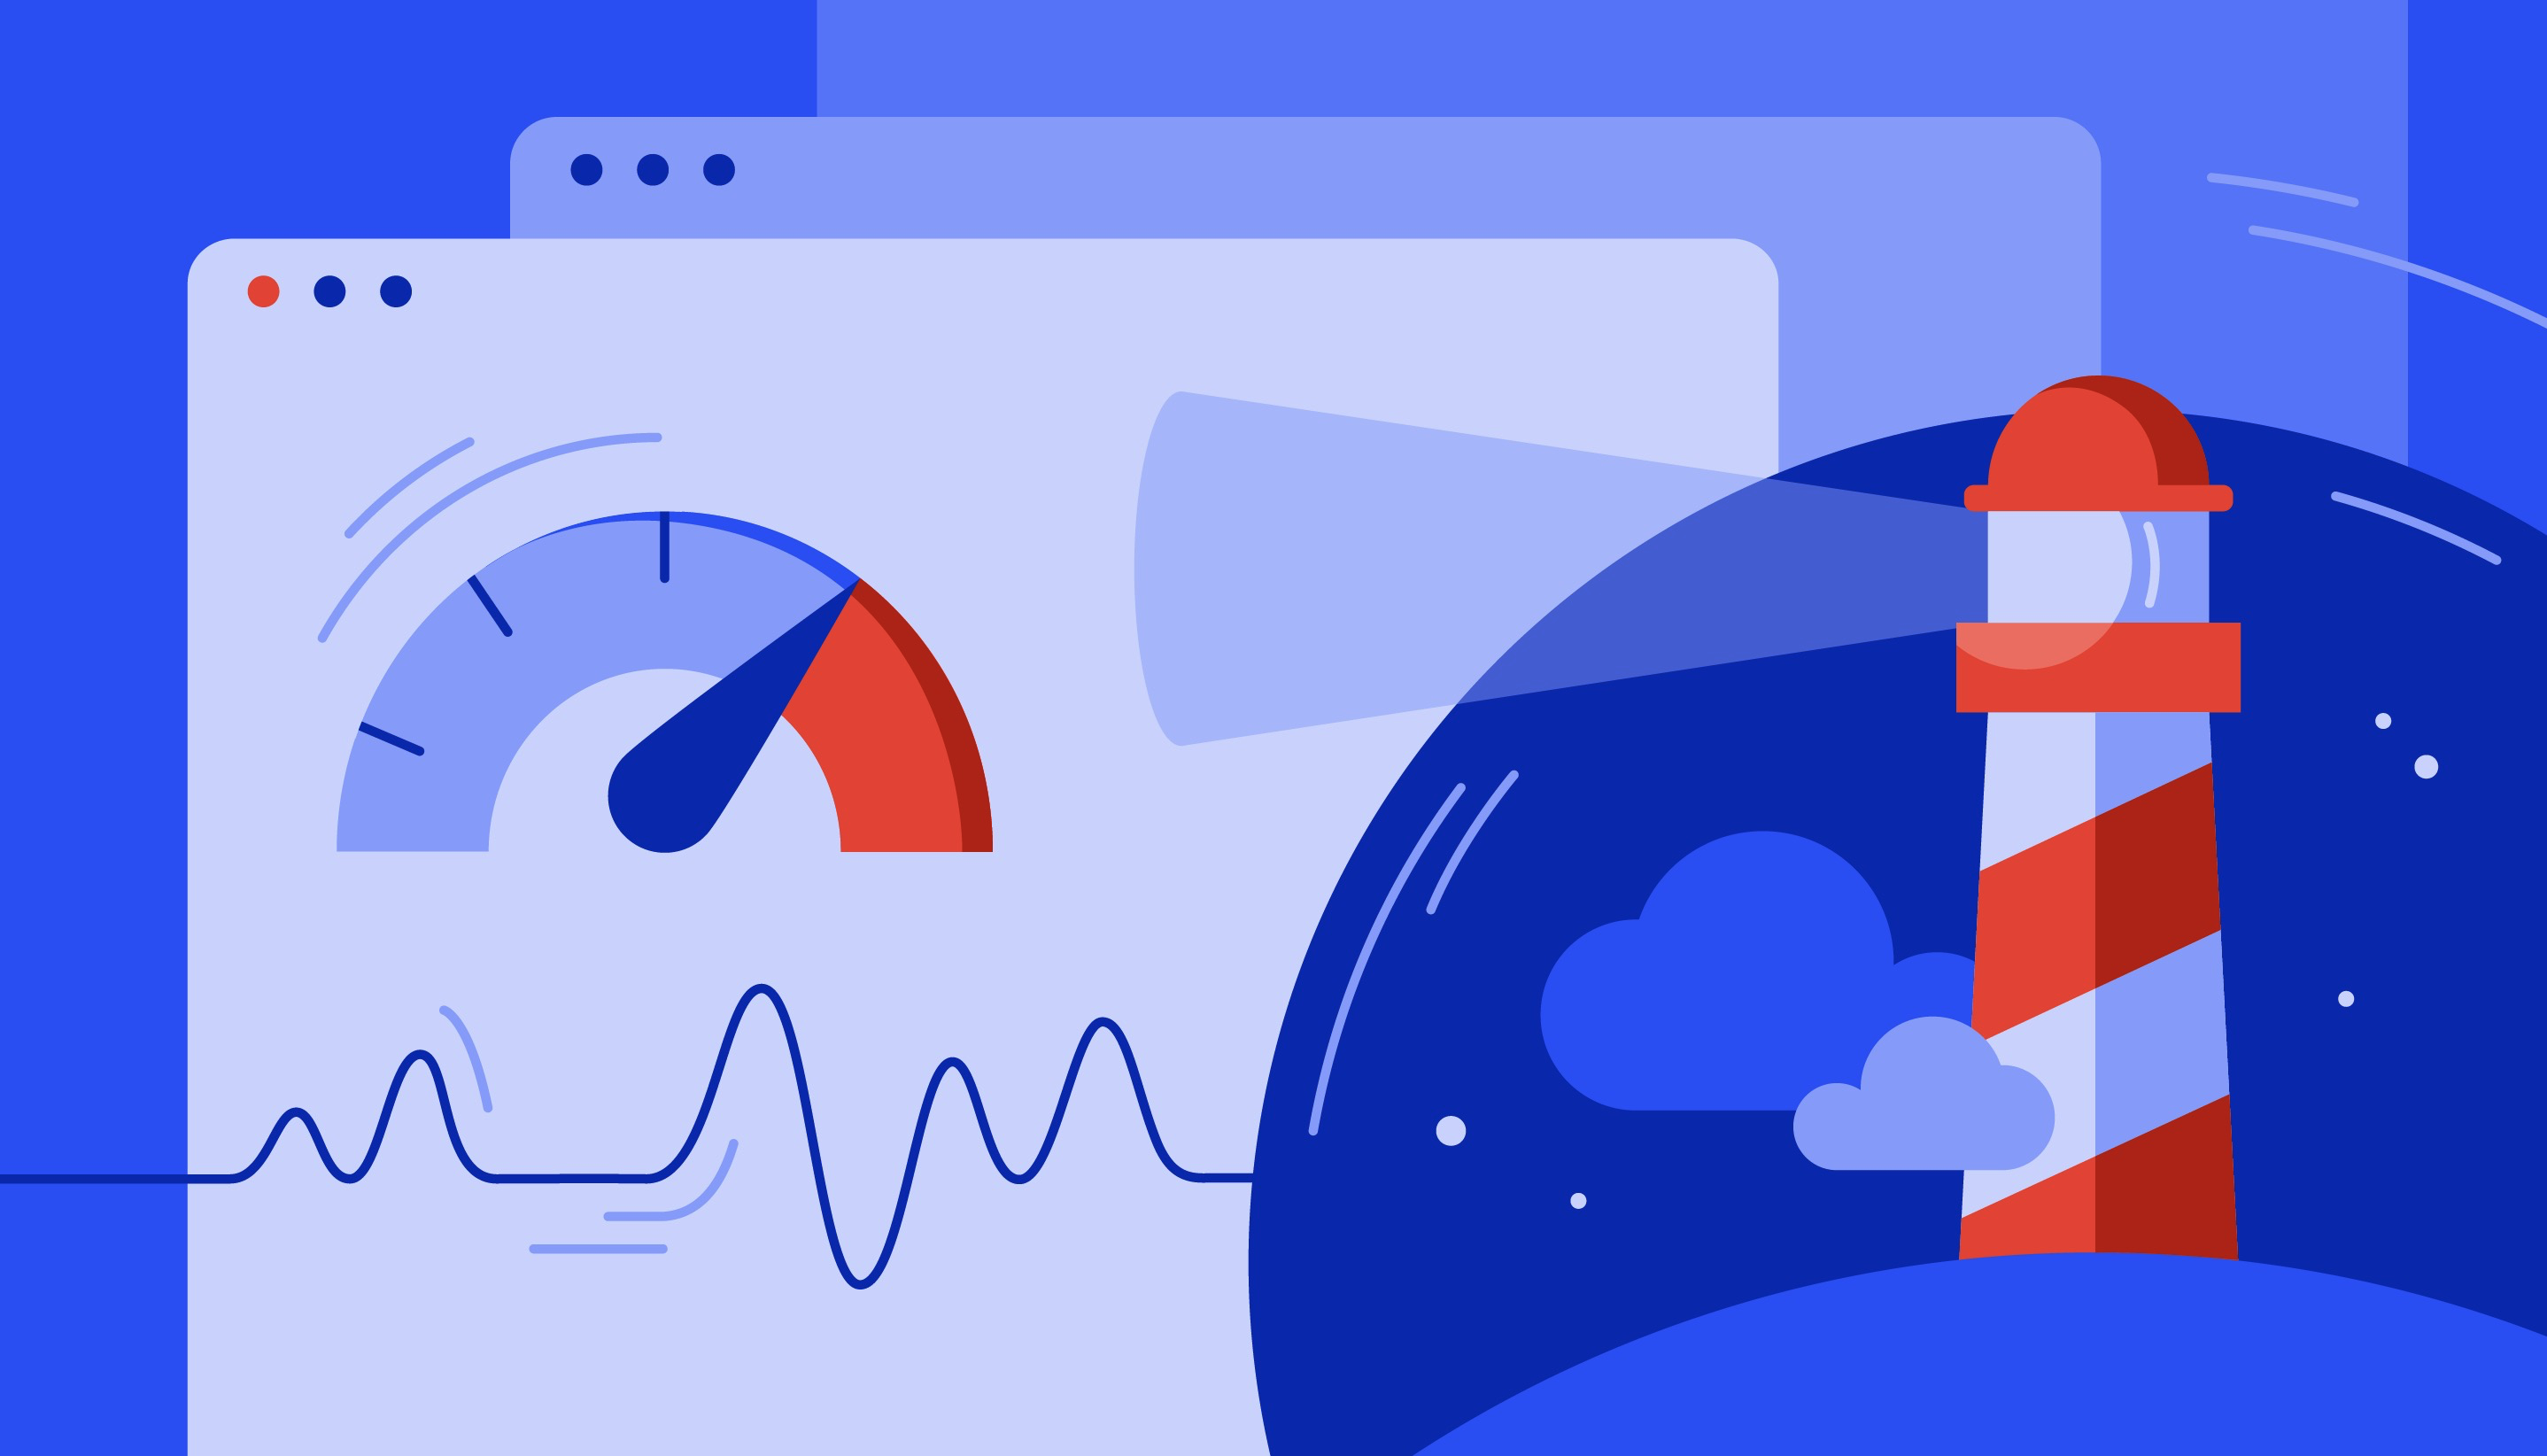 How Google Pagespeed works: Improve Your Score and Search Engine Ranking